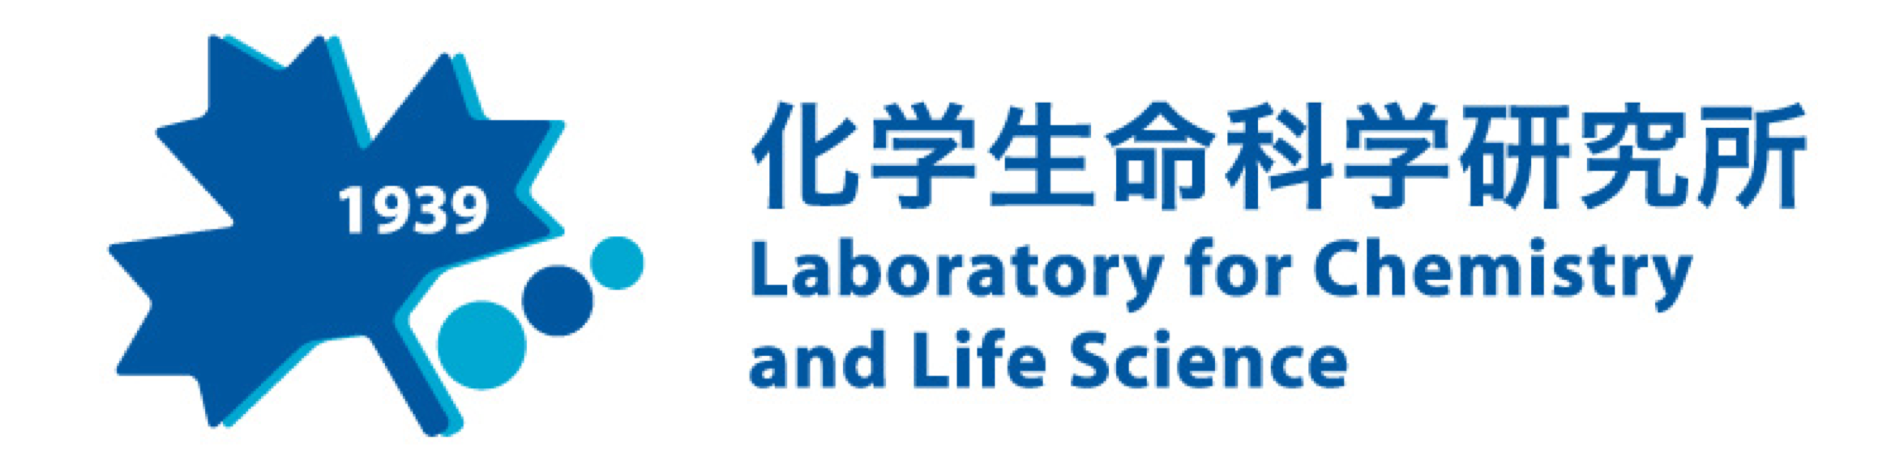 Laboratory for Chemistry and Life Science